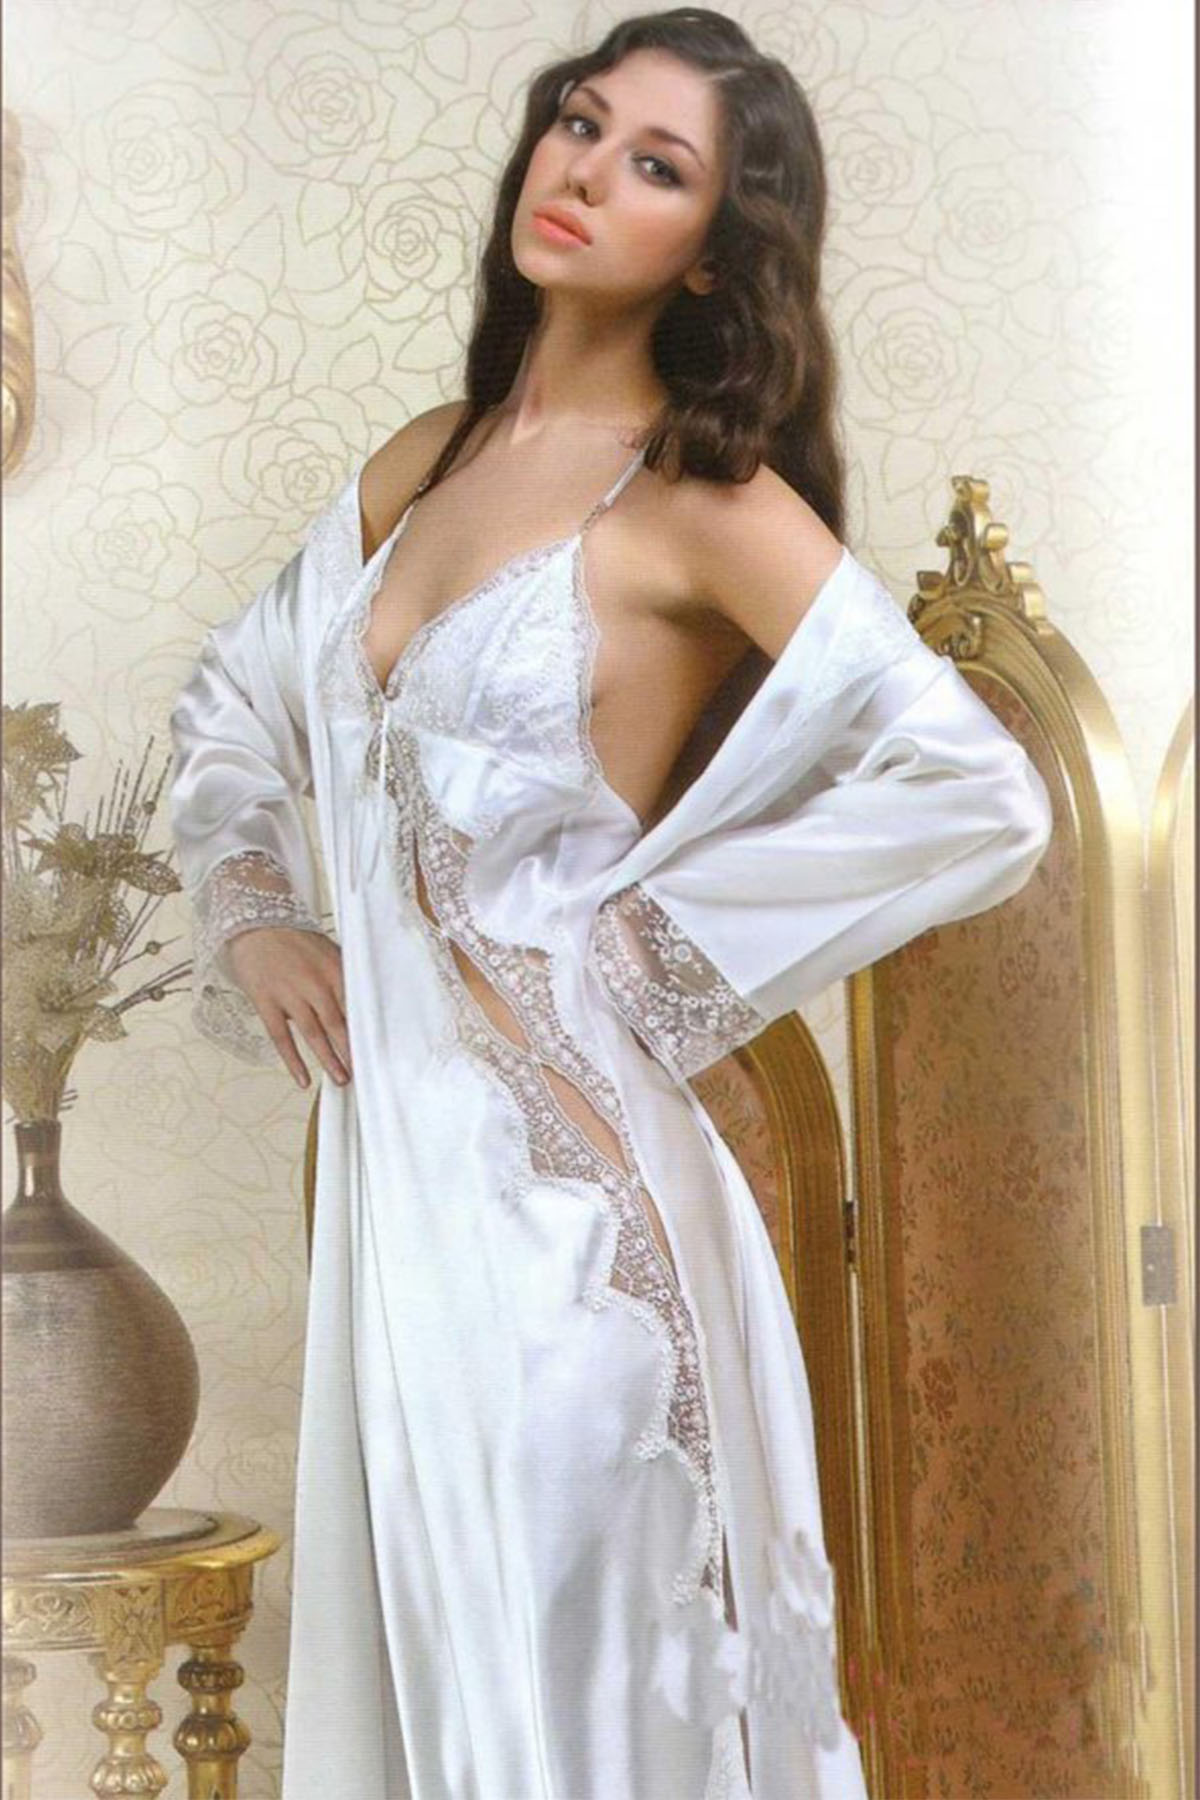 Espuar Women 1190 Silk Satin Ruched At Night At Home Casual Worn Negligee Nightgown and Pajama set Sizes S M L XL